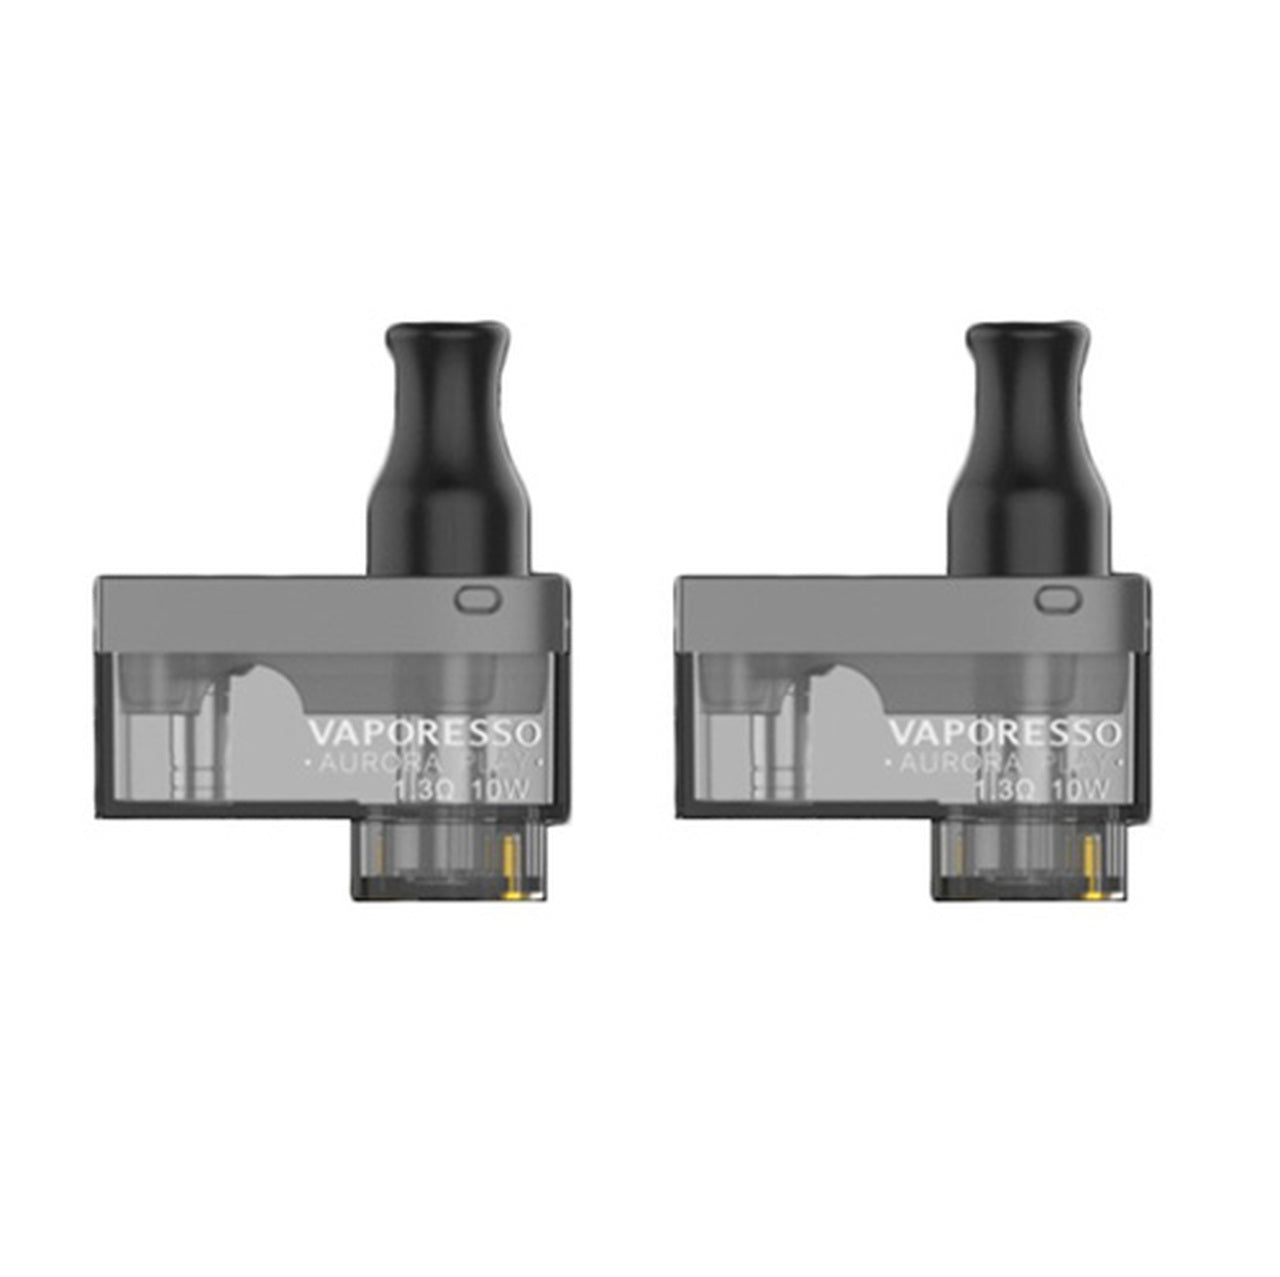 Vaporesso Aurora Play Pod Cartridges | Phantom Vape Supply